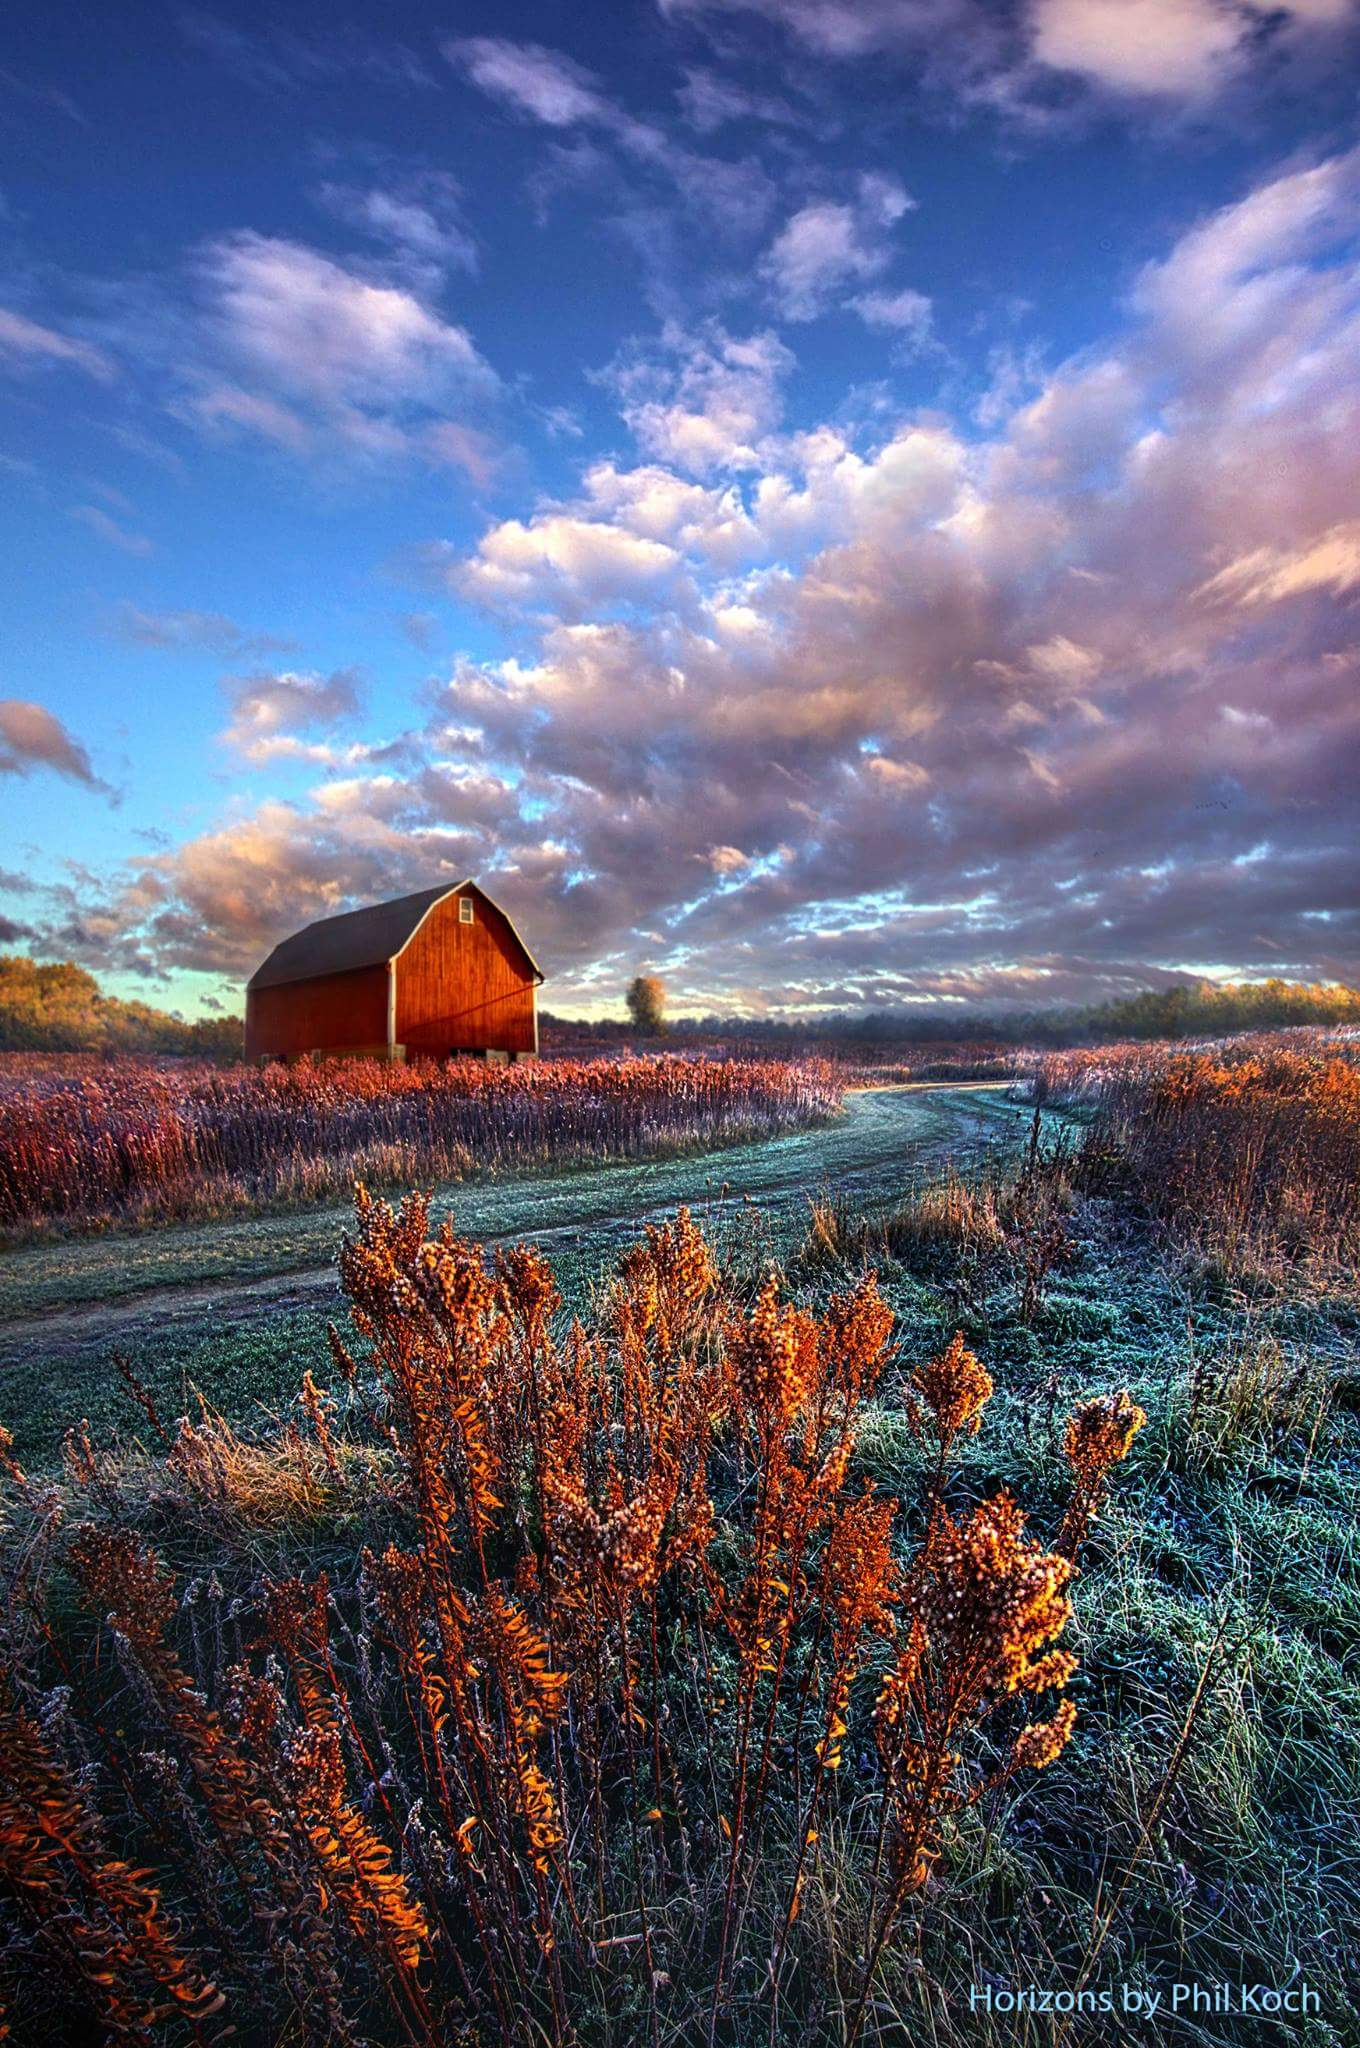 Fall Barn Wallpaper Quot Not All Roads Are Paved Quot Horizons By Phil Koch